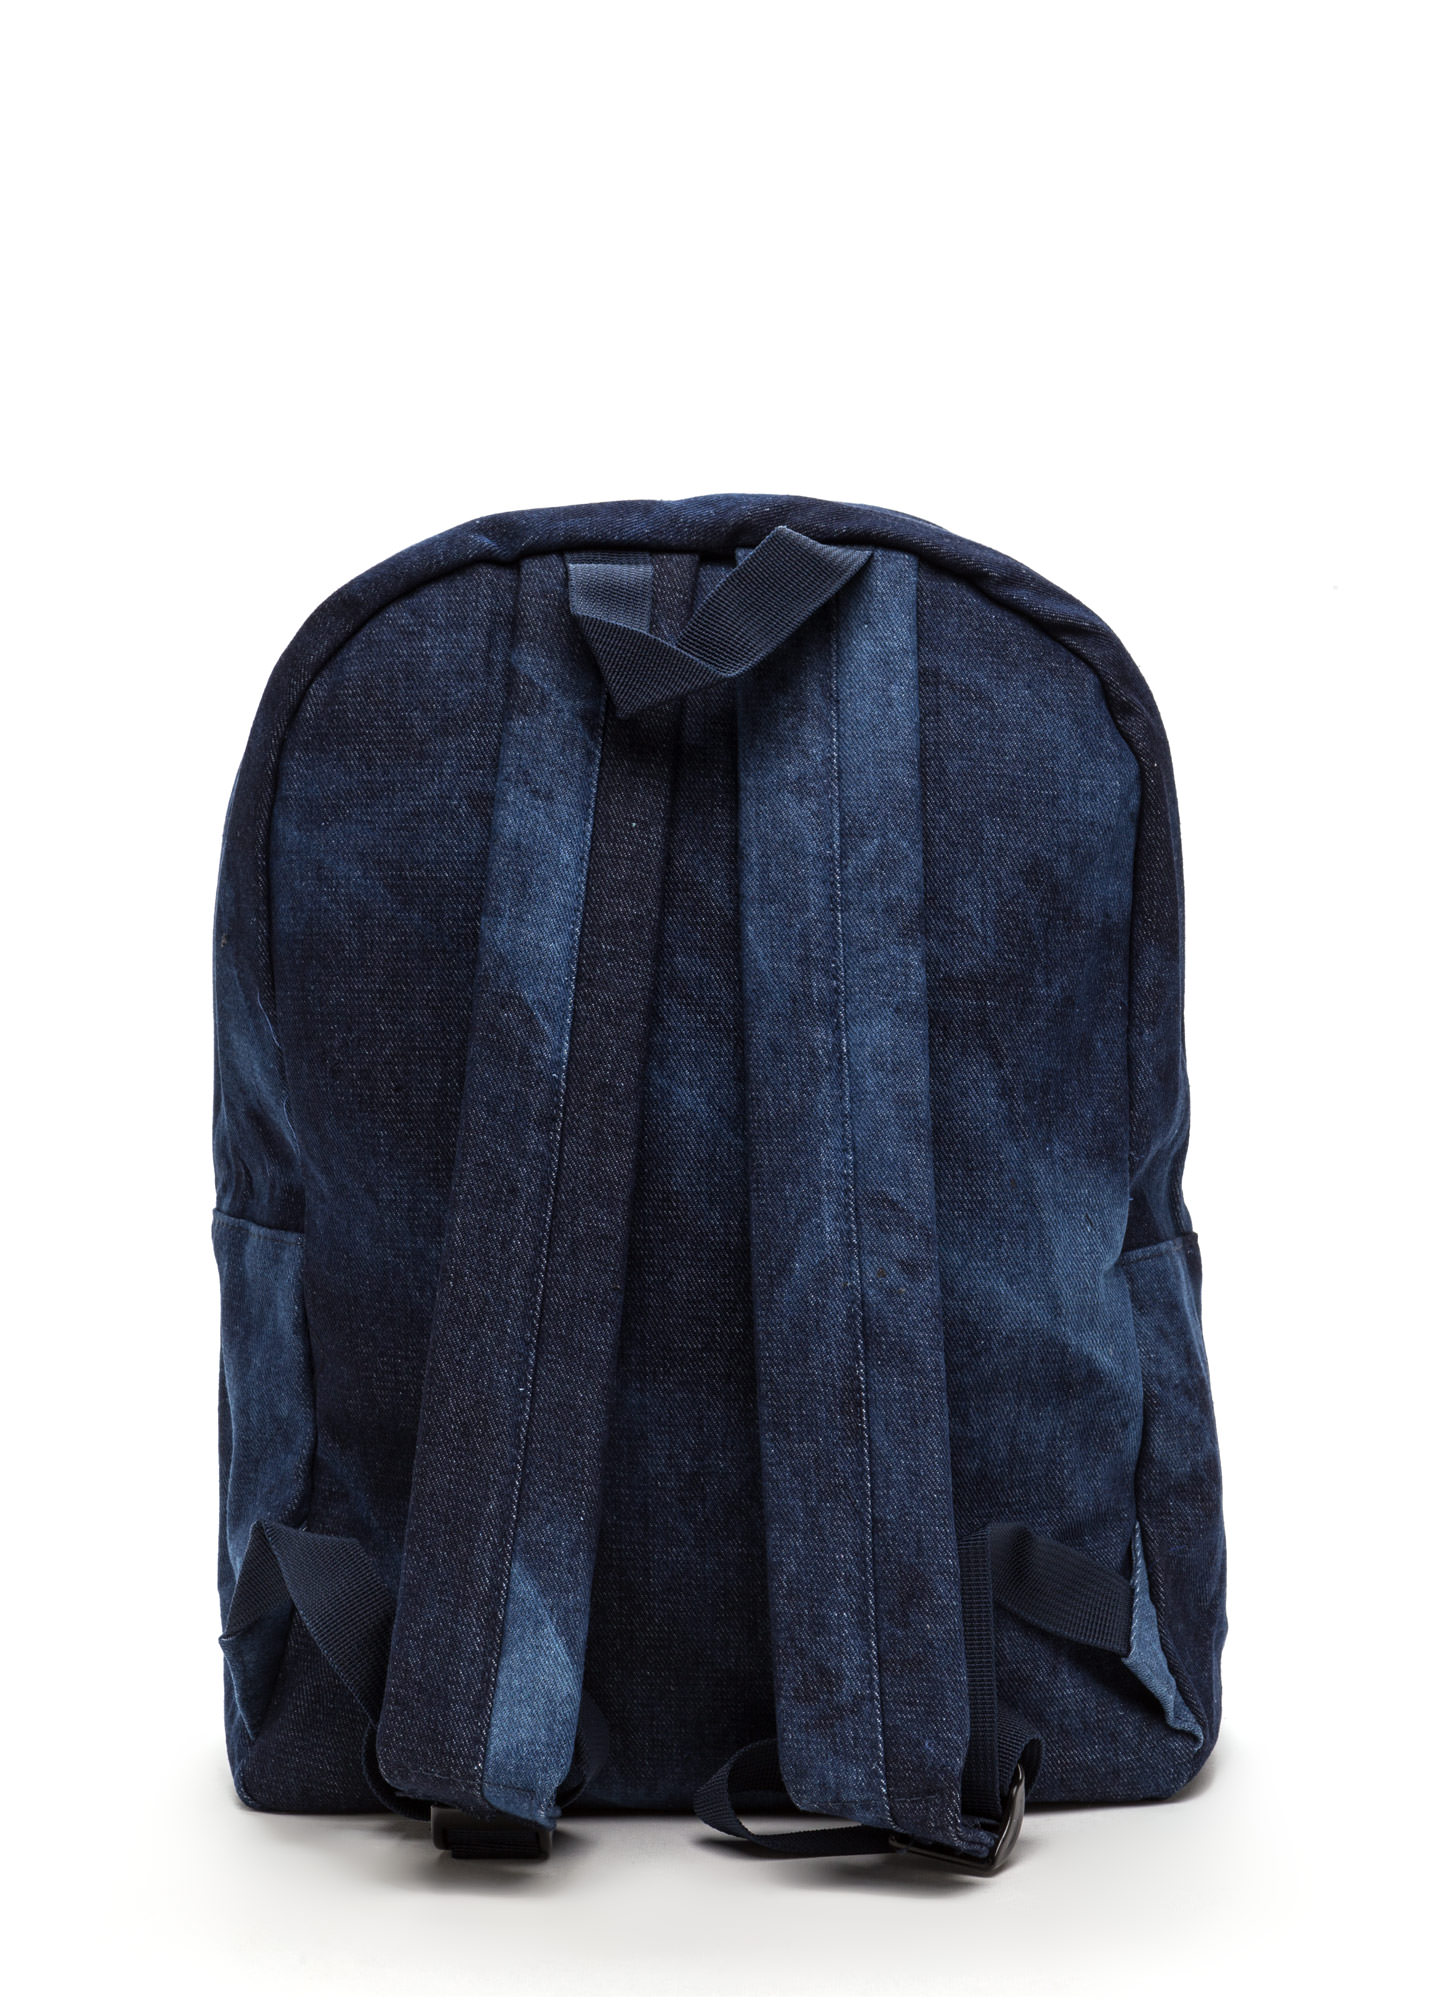 Mix 'N Patch Denim Backpack DKBLUE